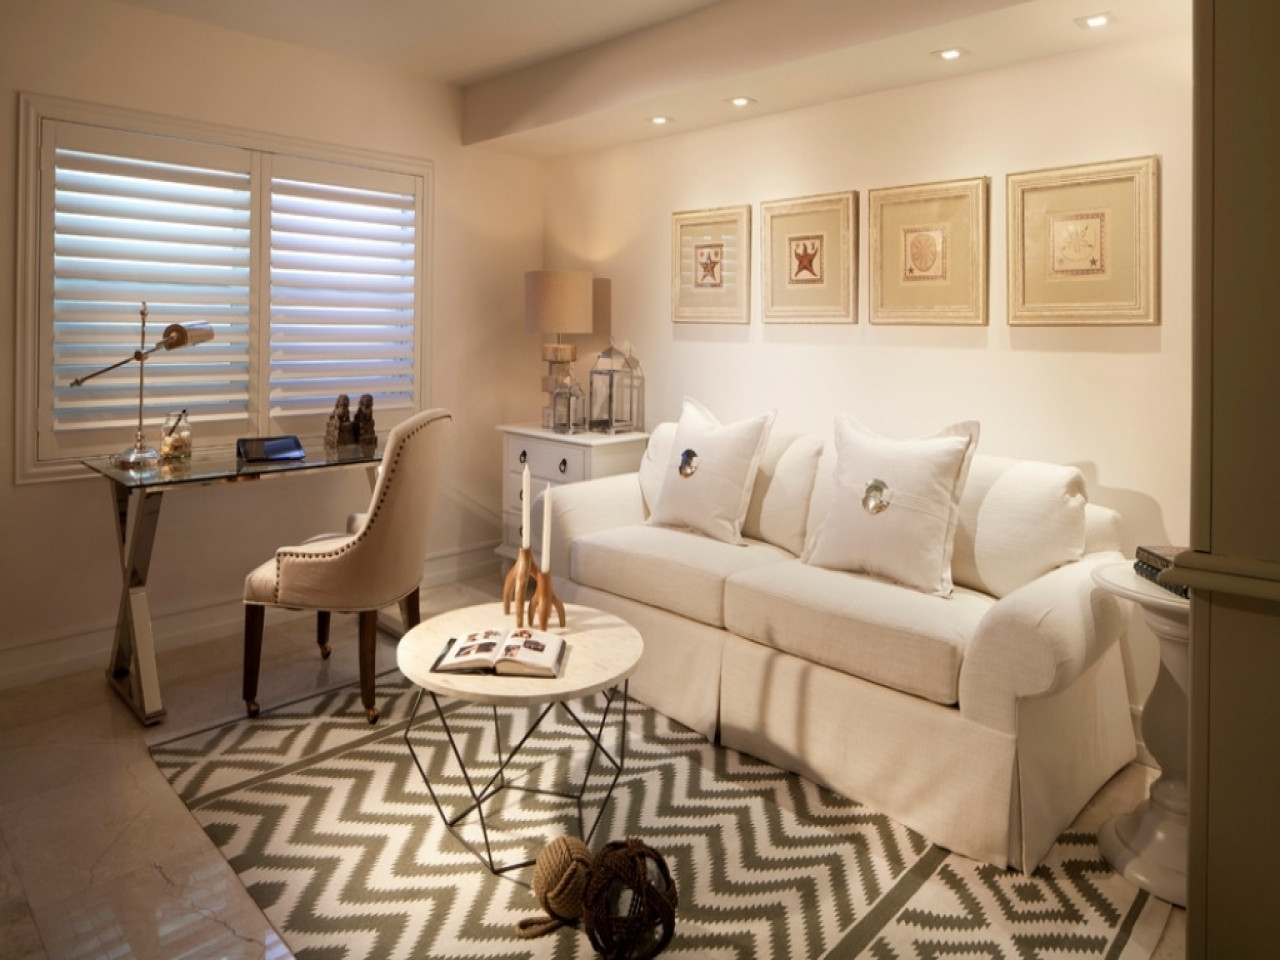 Best ideas about Small Office Guest Room Ideas . Save or Pin Guest room decor ideas small home office guest room ideas Now.